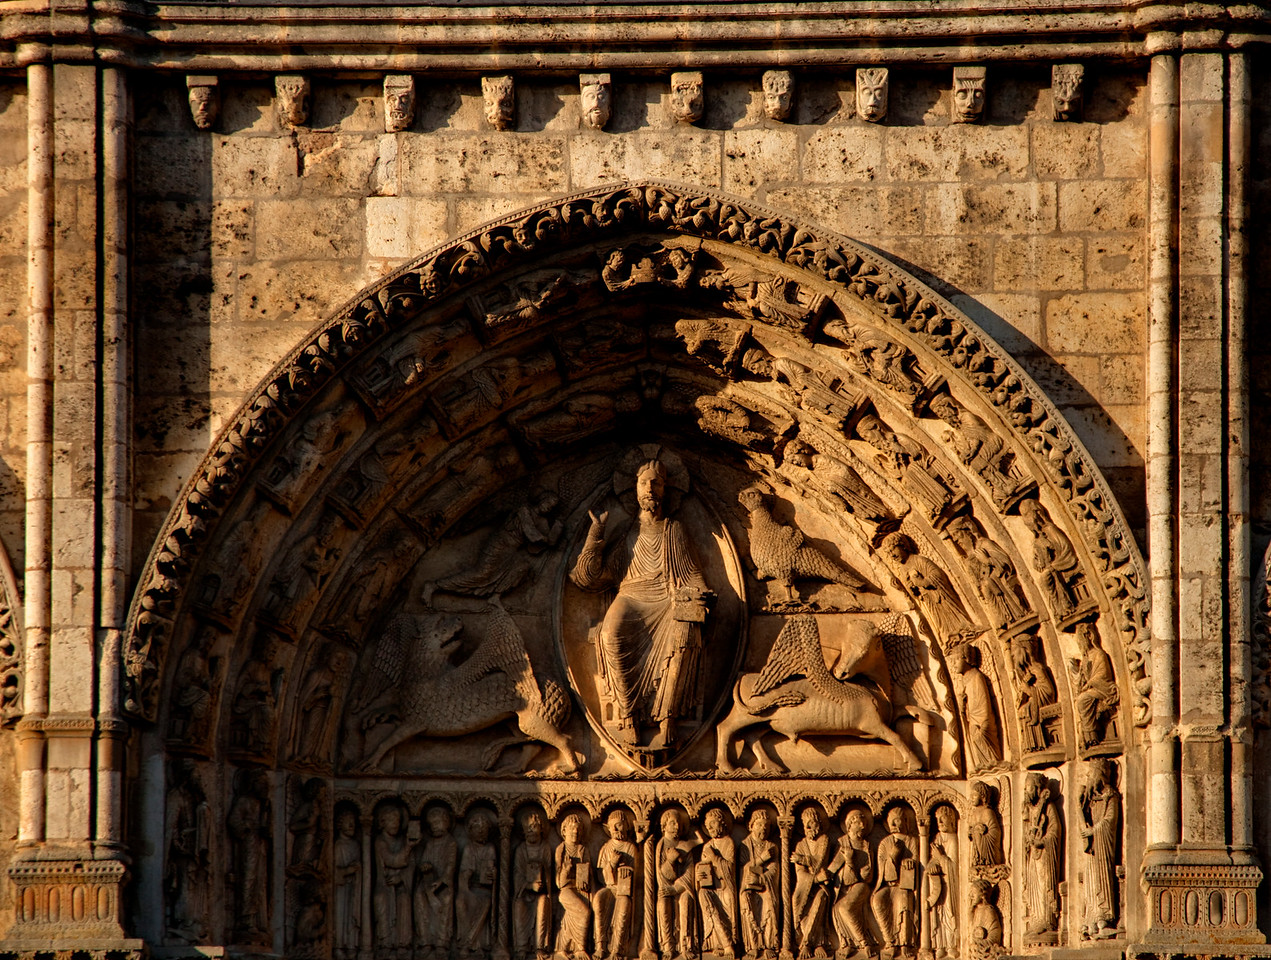 Chartres Cathedral West Facade, Christ in Majesty with the Symbols of the Evangelists